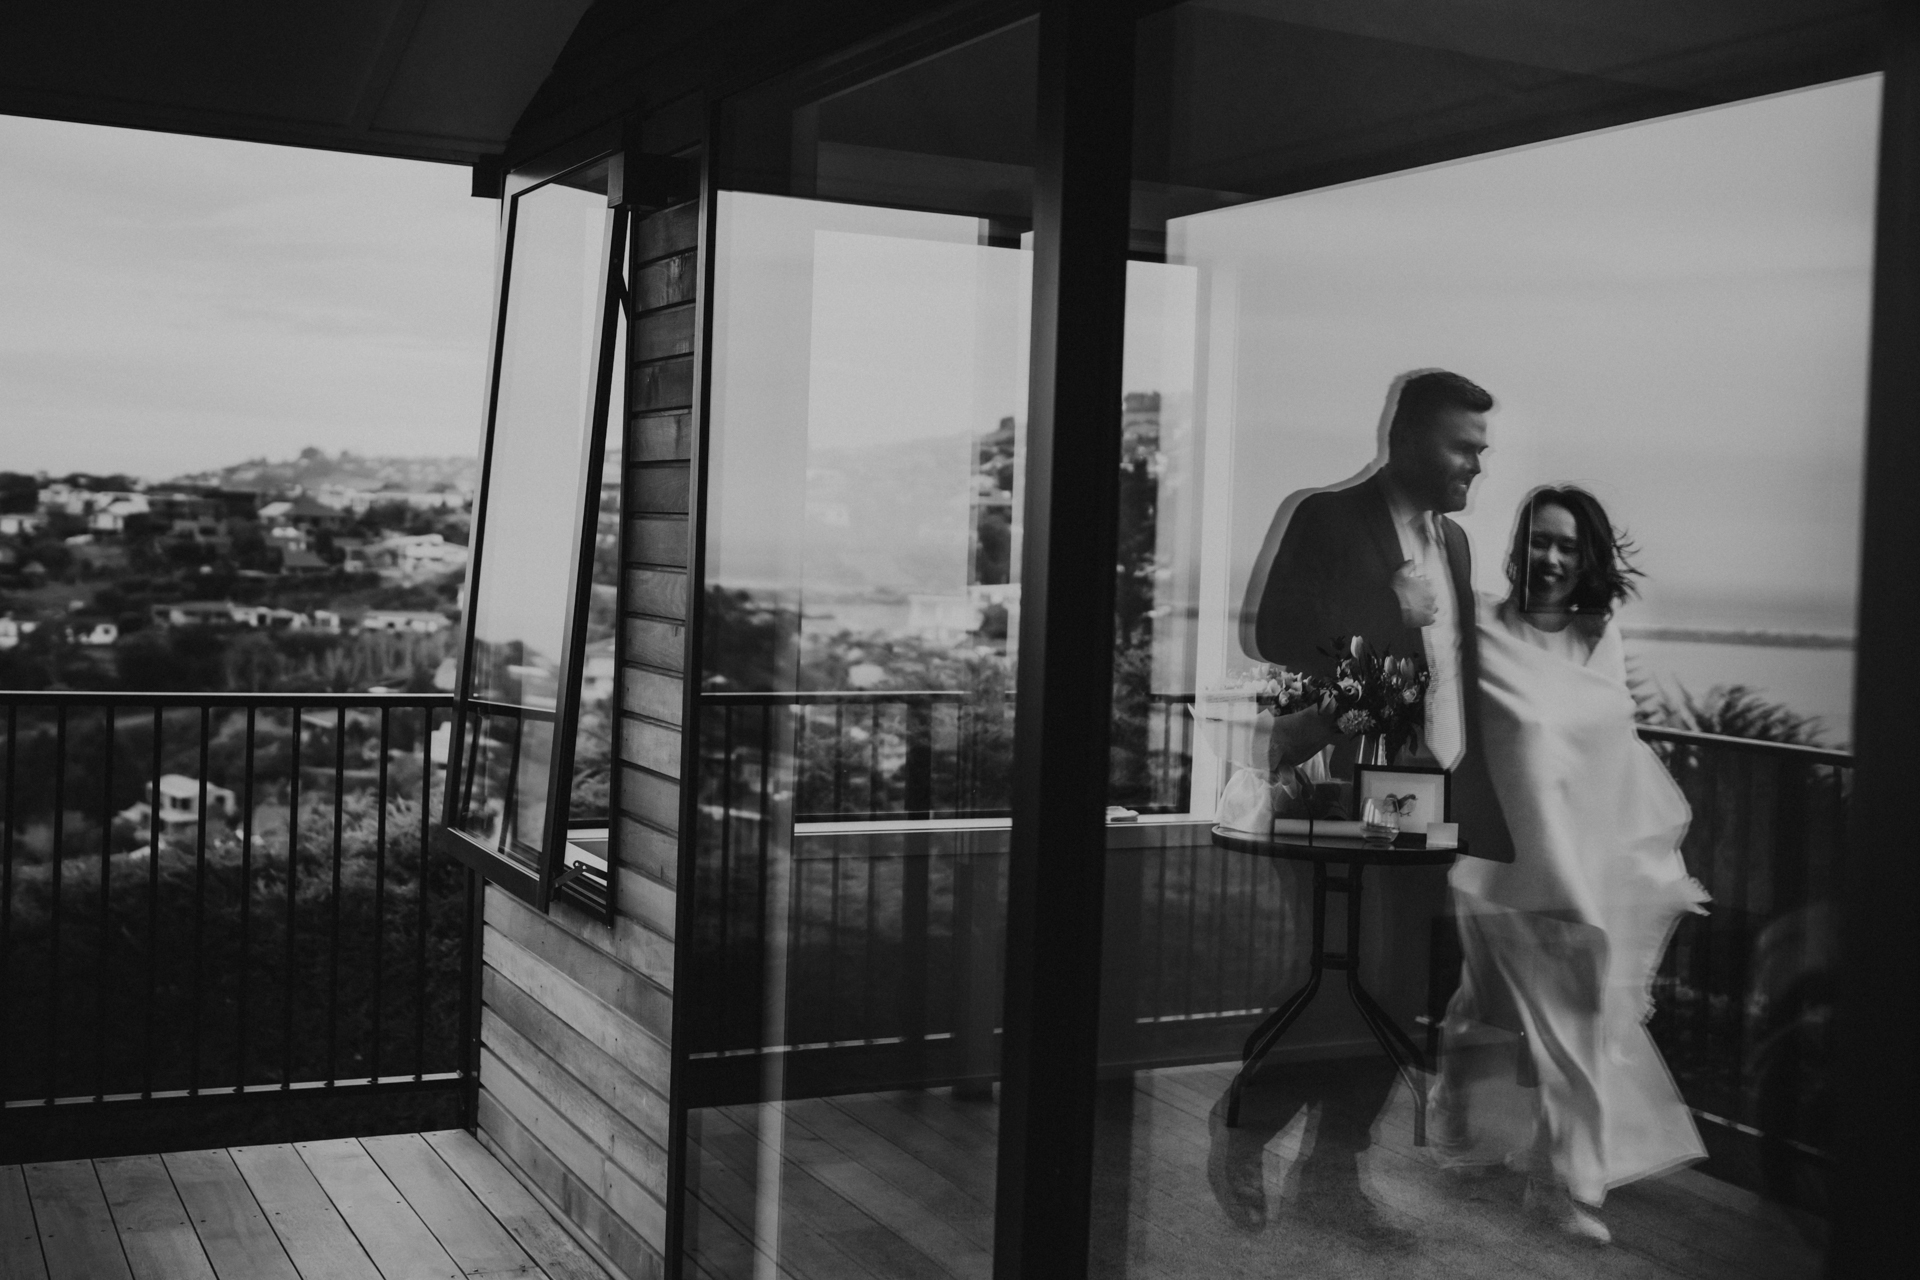 Christchruch Elopement Ceremony Picture | the couple, now happily married and smiling, reflected in the large balcony window